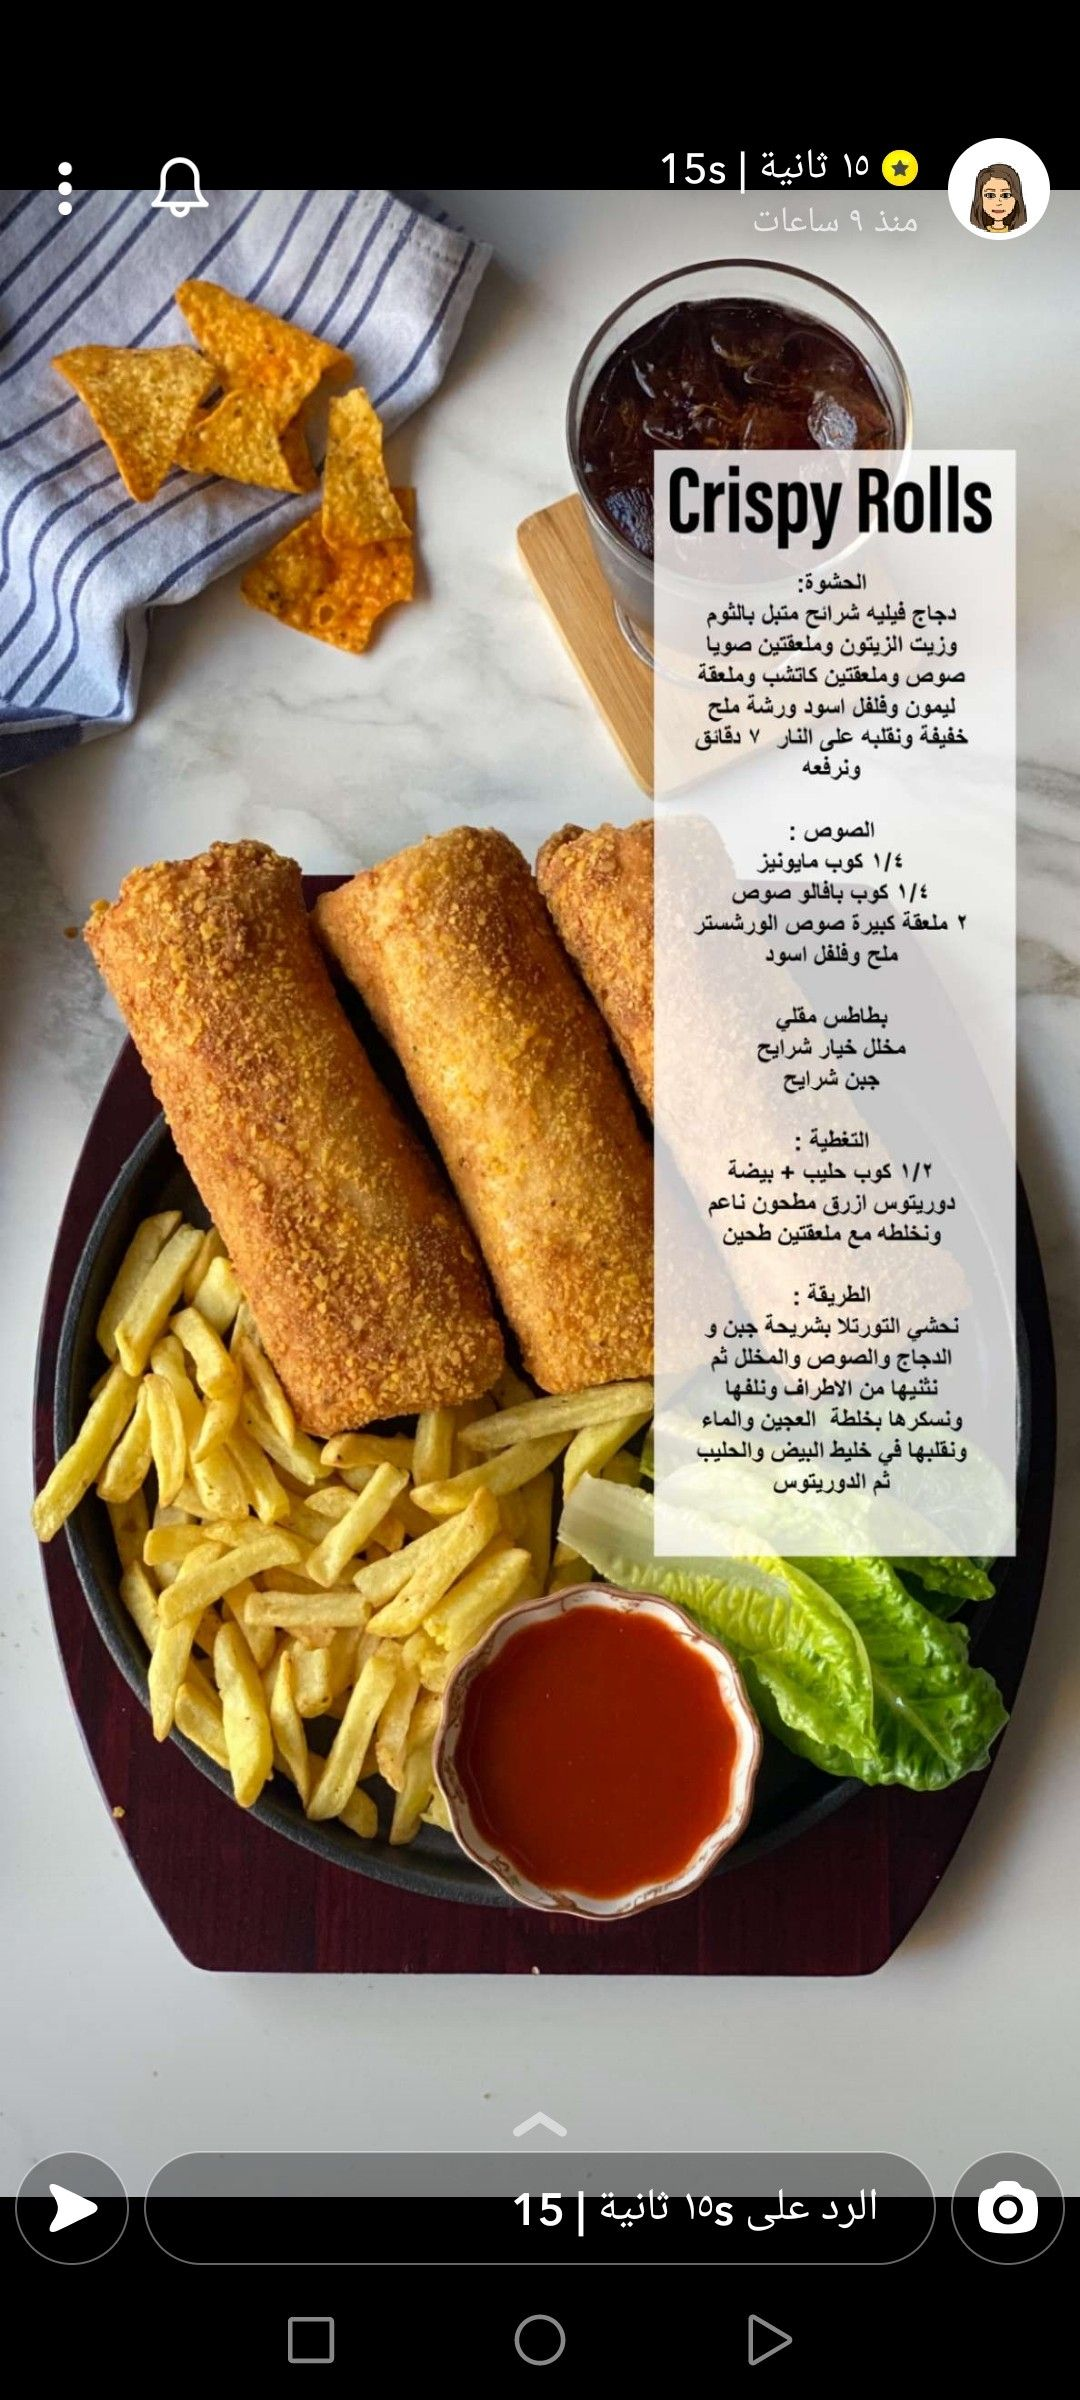 Pin By Joud Mhmd On A From The Pictures In 2021 Food Receipes Save Food Crispy Rolls